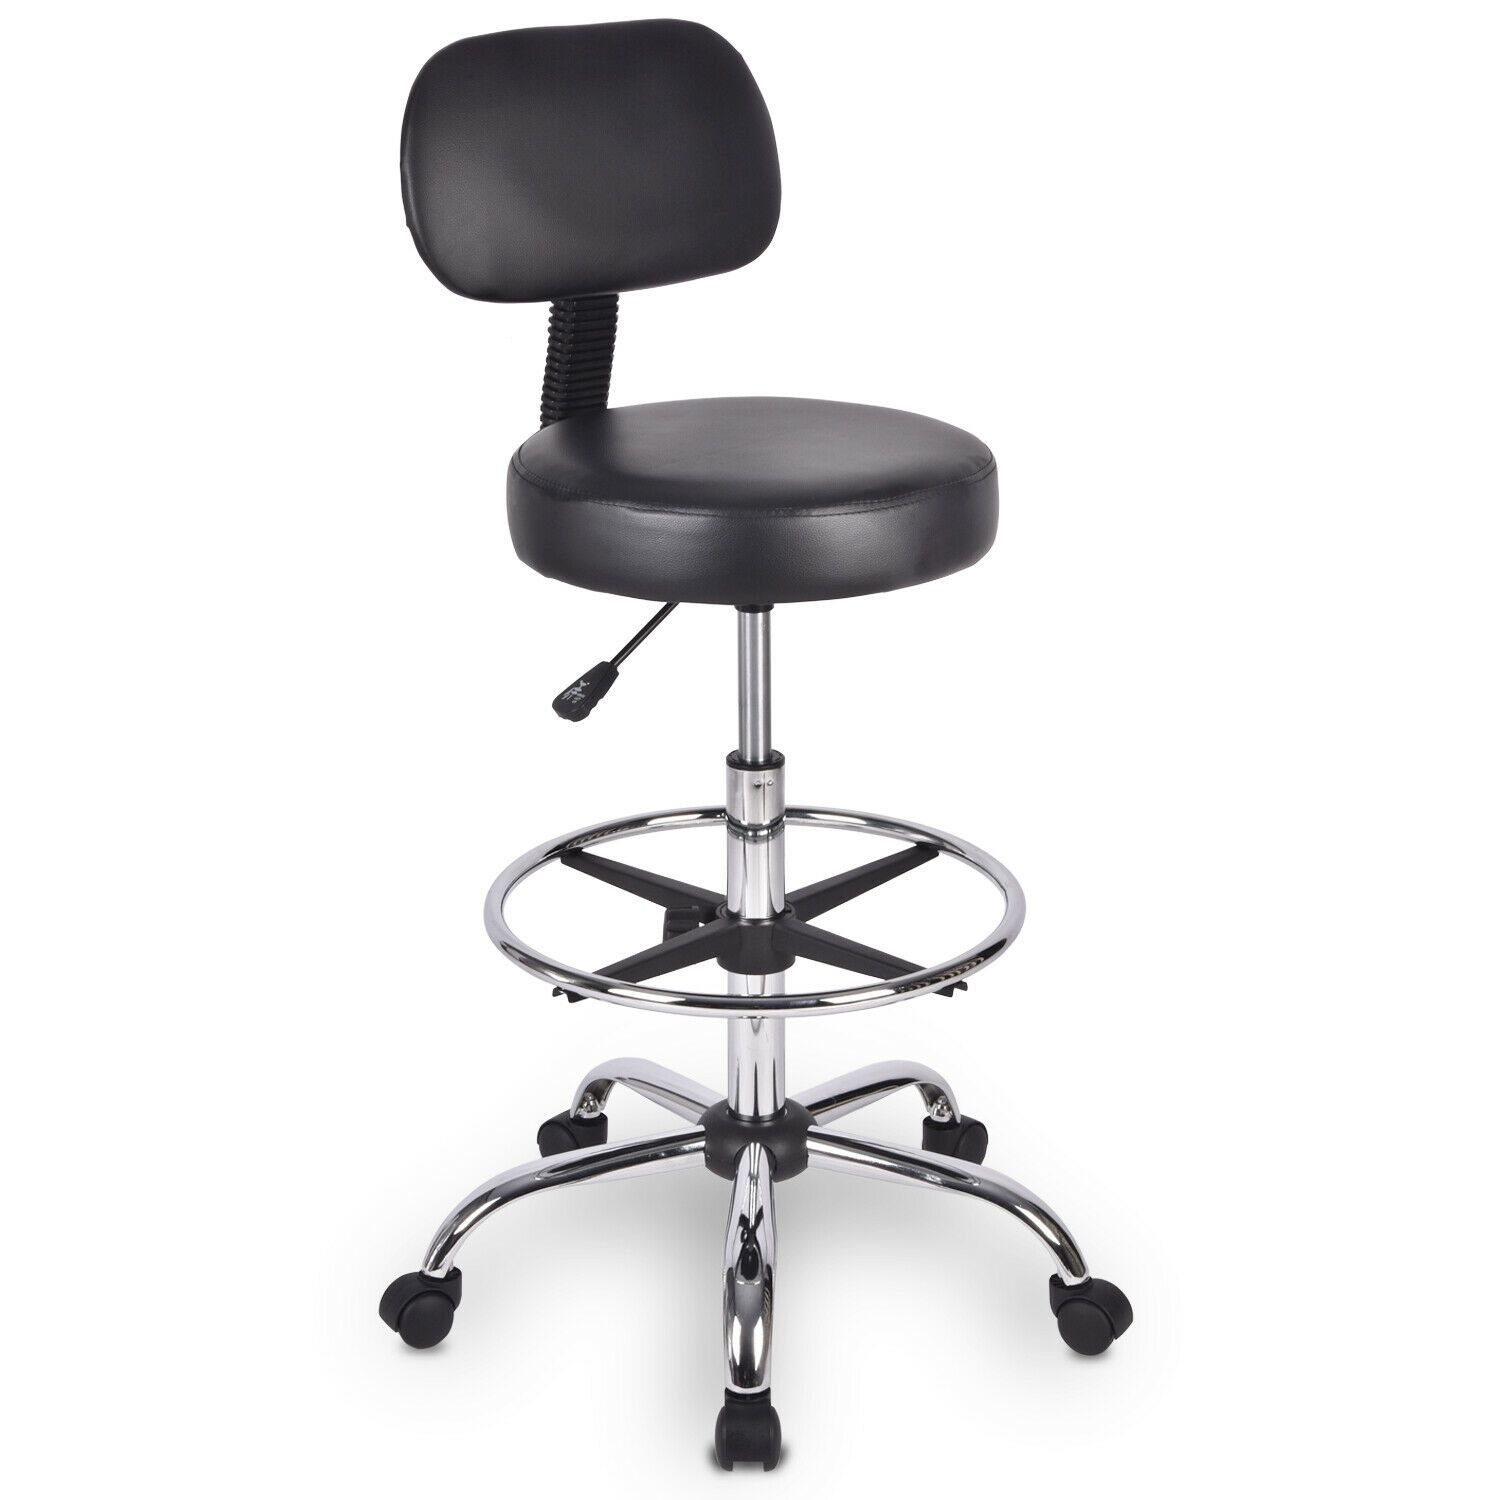 Drafting Stool Rolling Chair with Wheel Height Adjustable Swivel Black